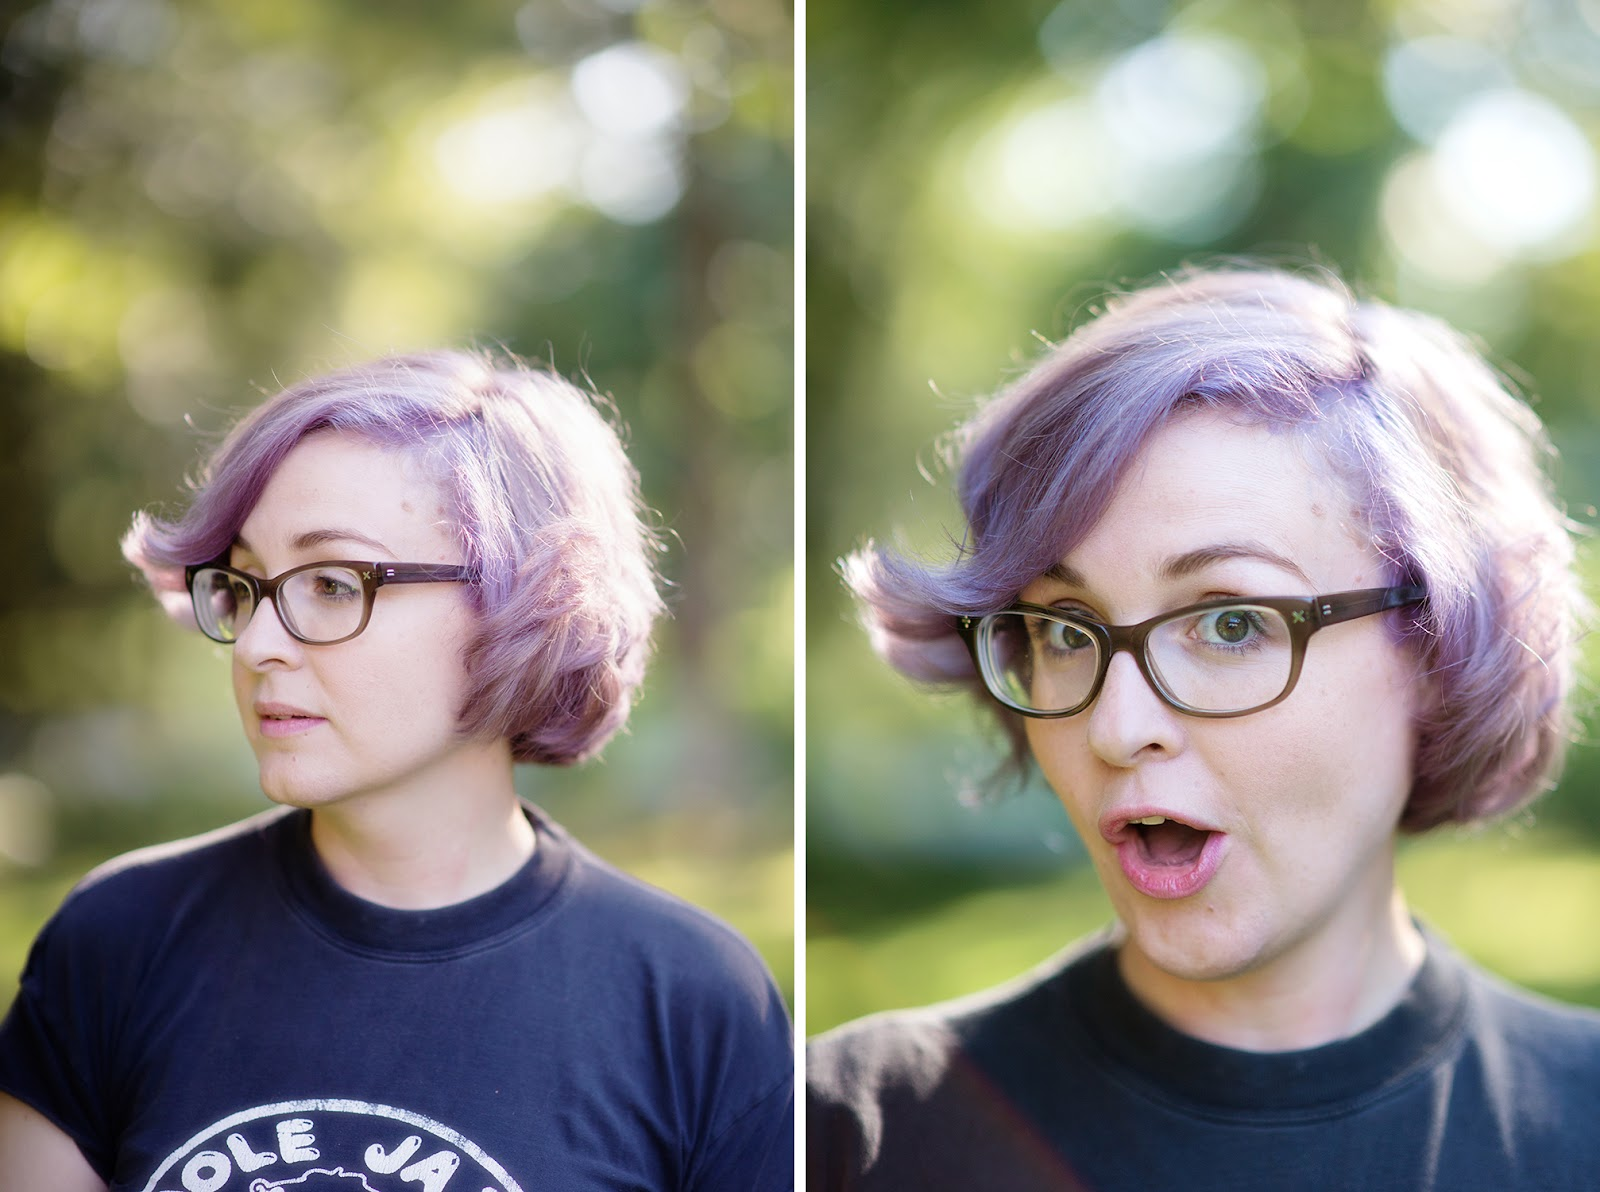 Purple Hair For Dayz - Little Lady Little City